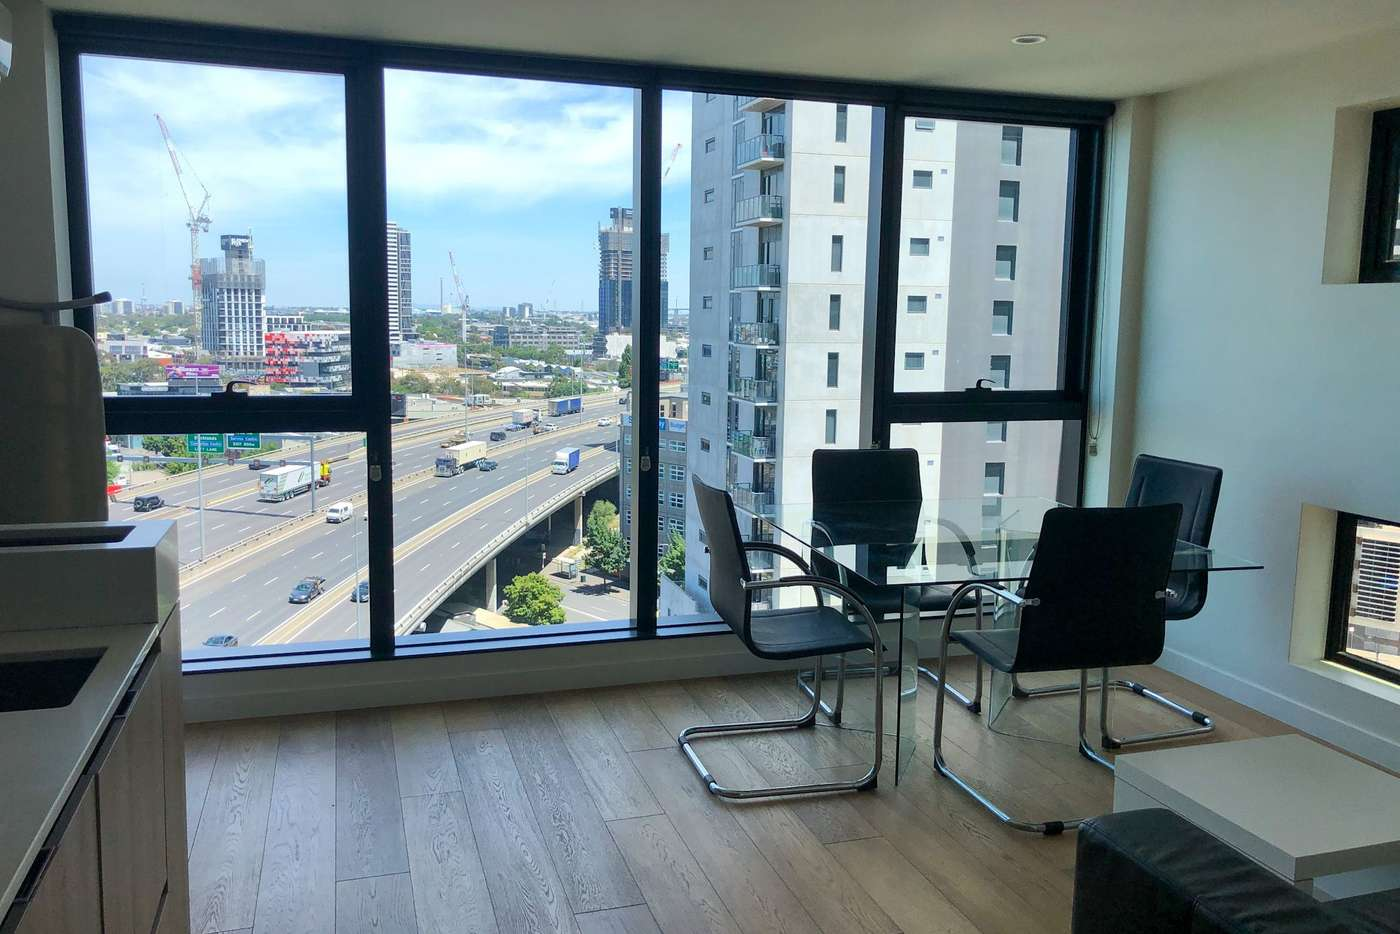 Main view of Homely house listing, 1204/58 Clarke Street, Southbank VIC 3006